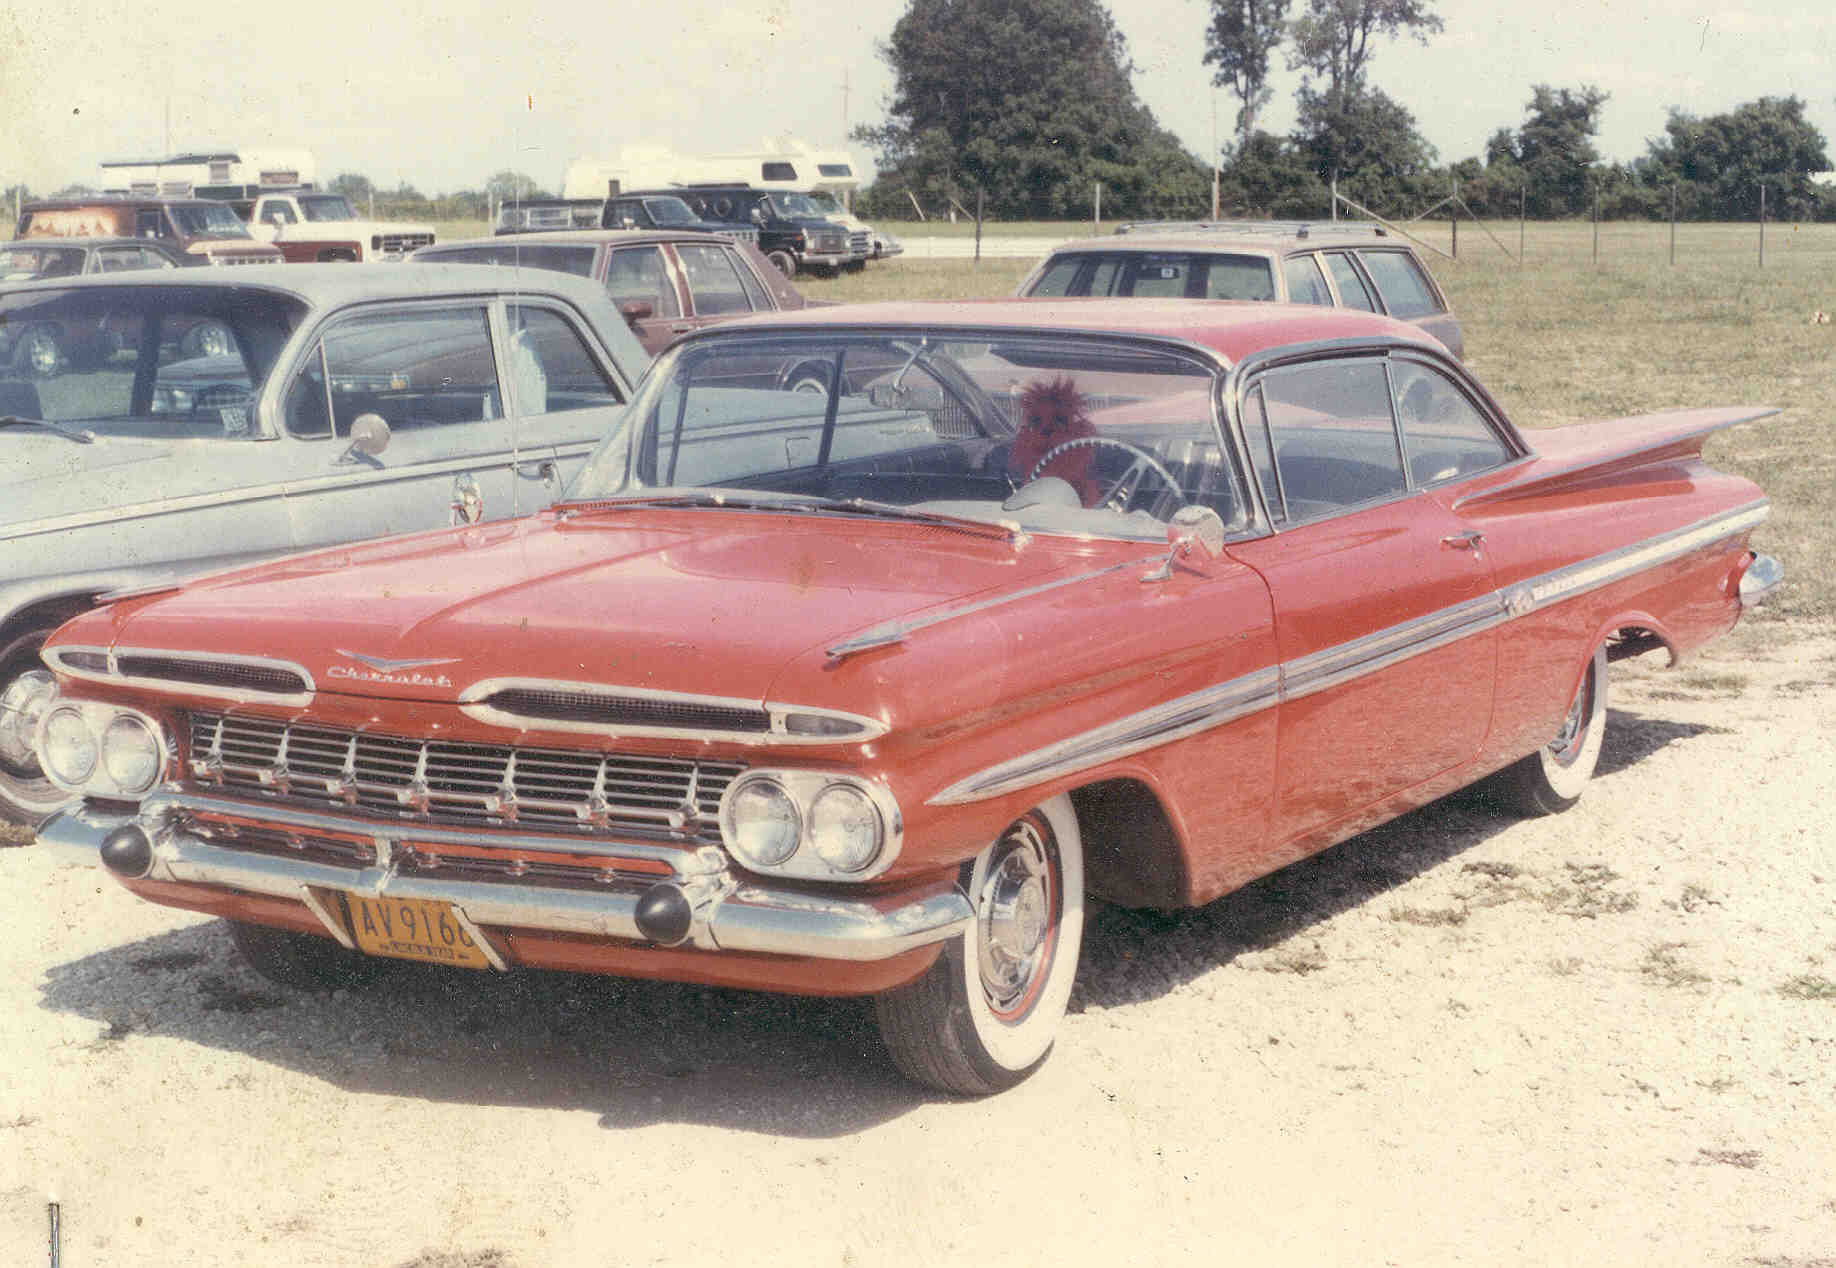 Original 1959 Chevrolet Photos